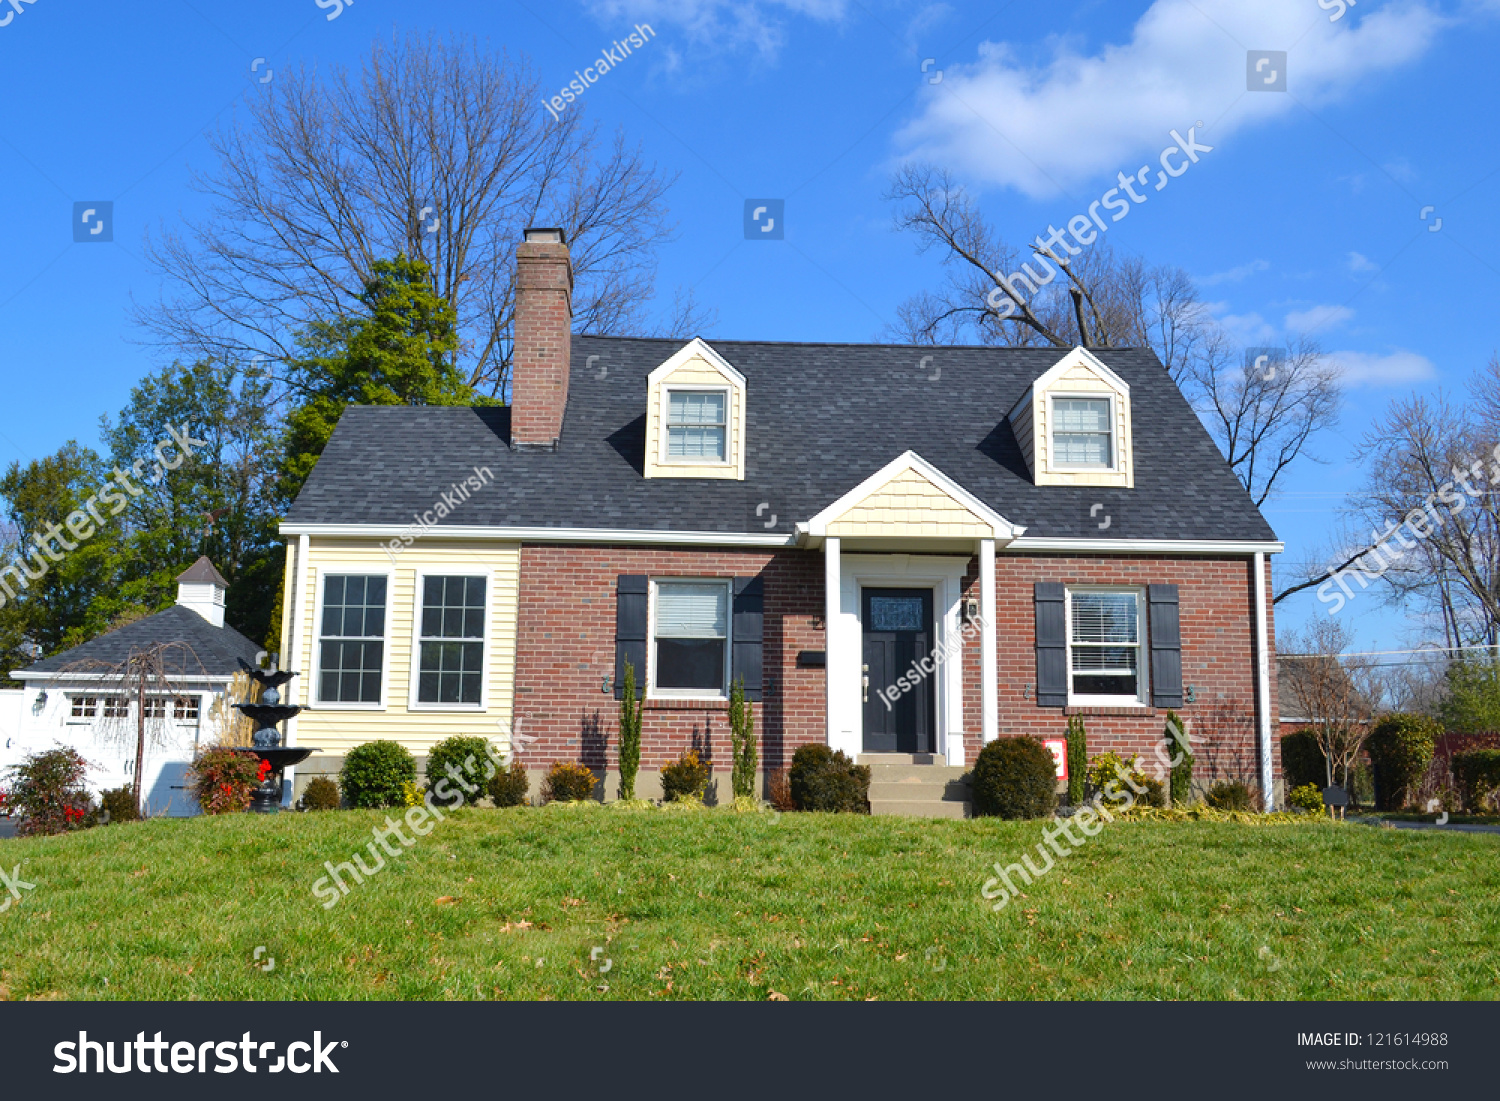 Small Red Brick American Home Stock Photo 121614988